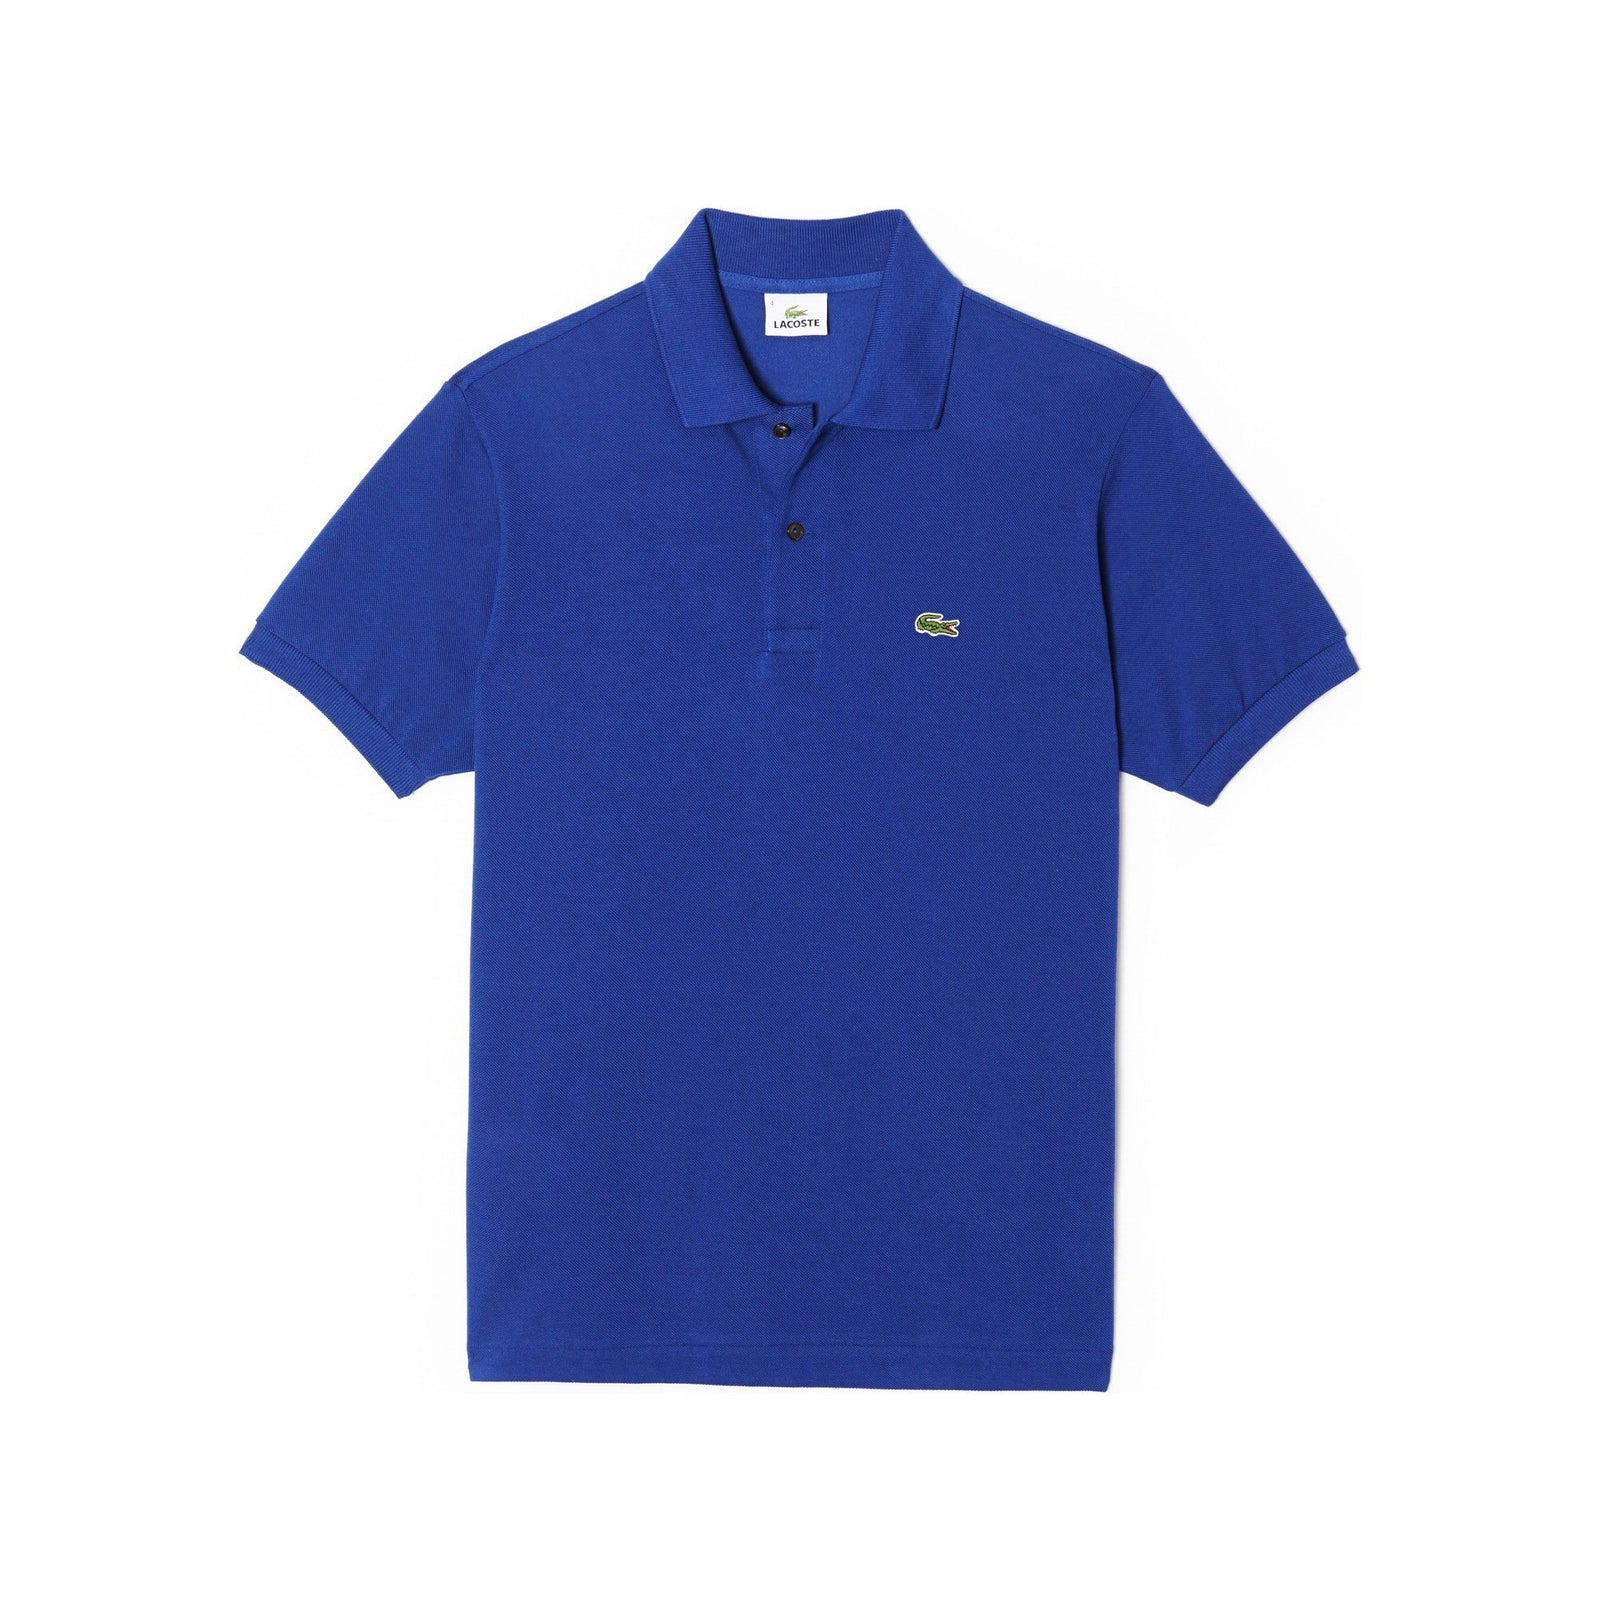 Lacoste L1212-S2P Classic Fit Polo in Ocean Blue